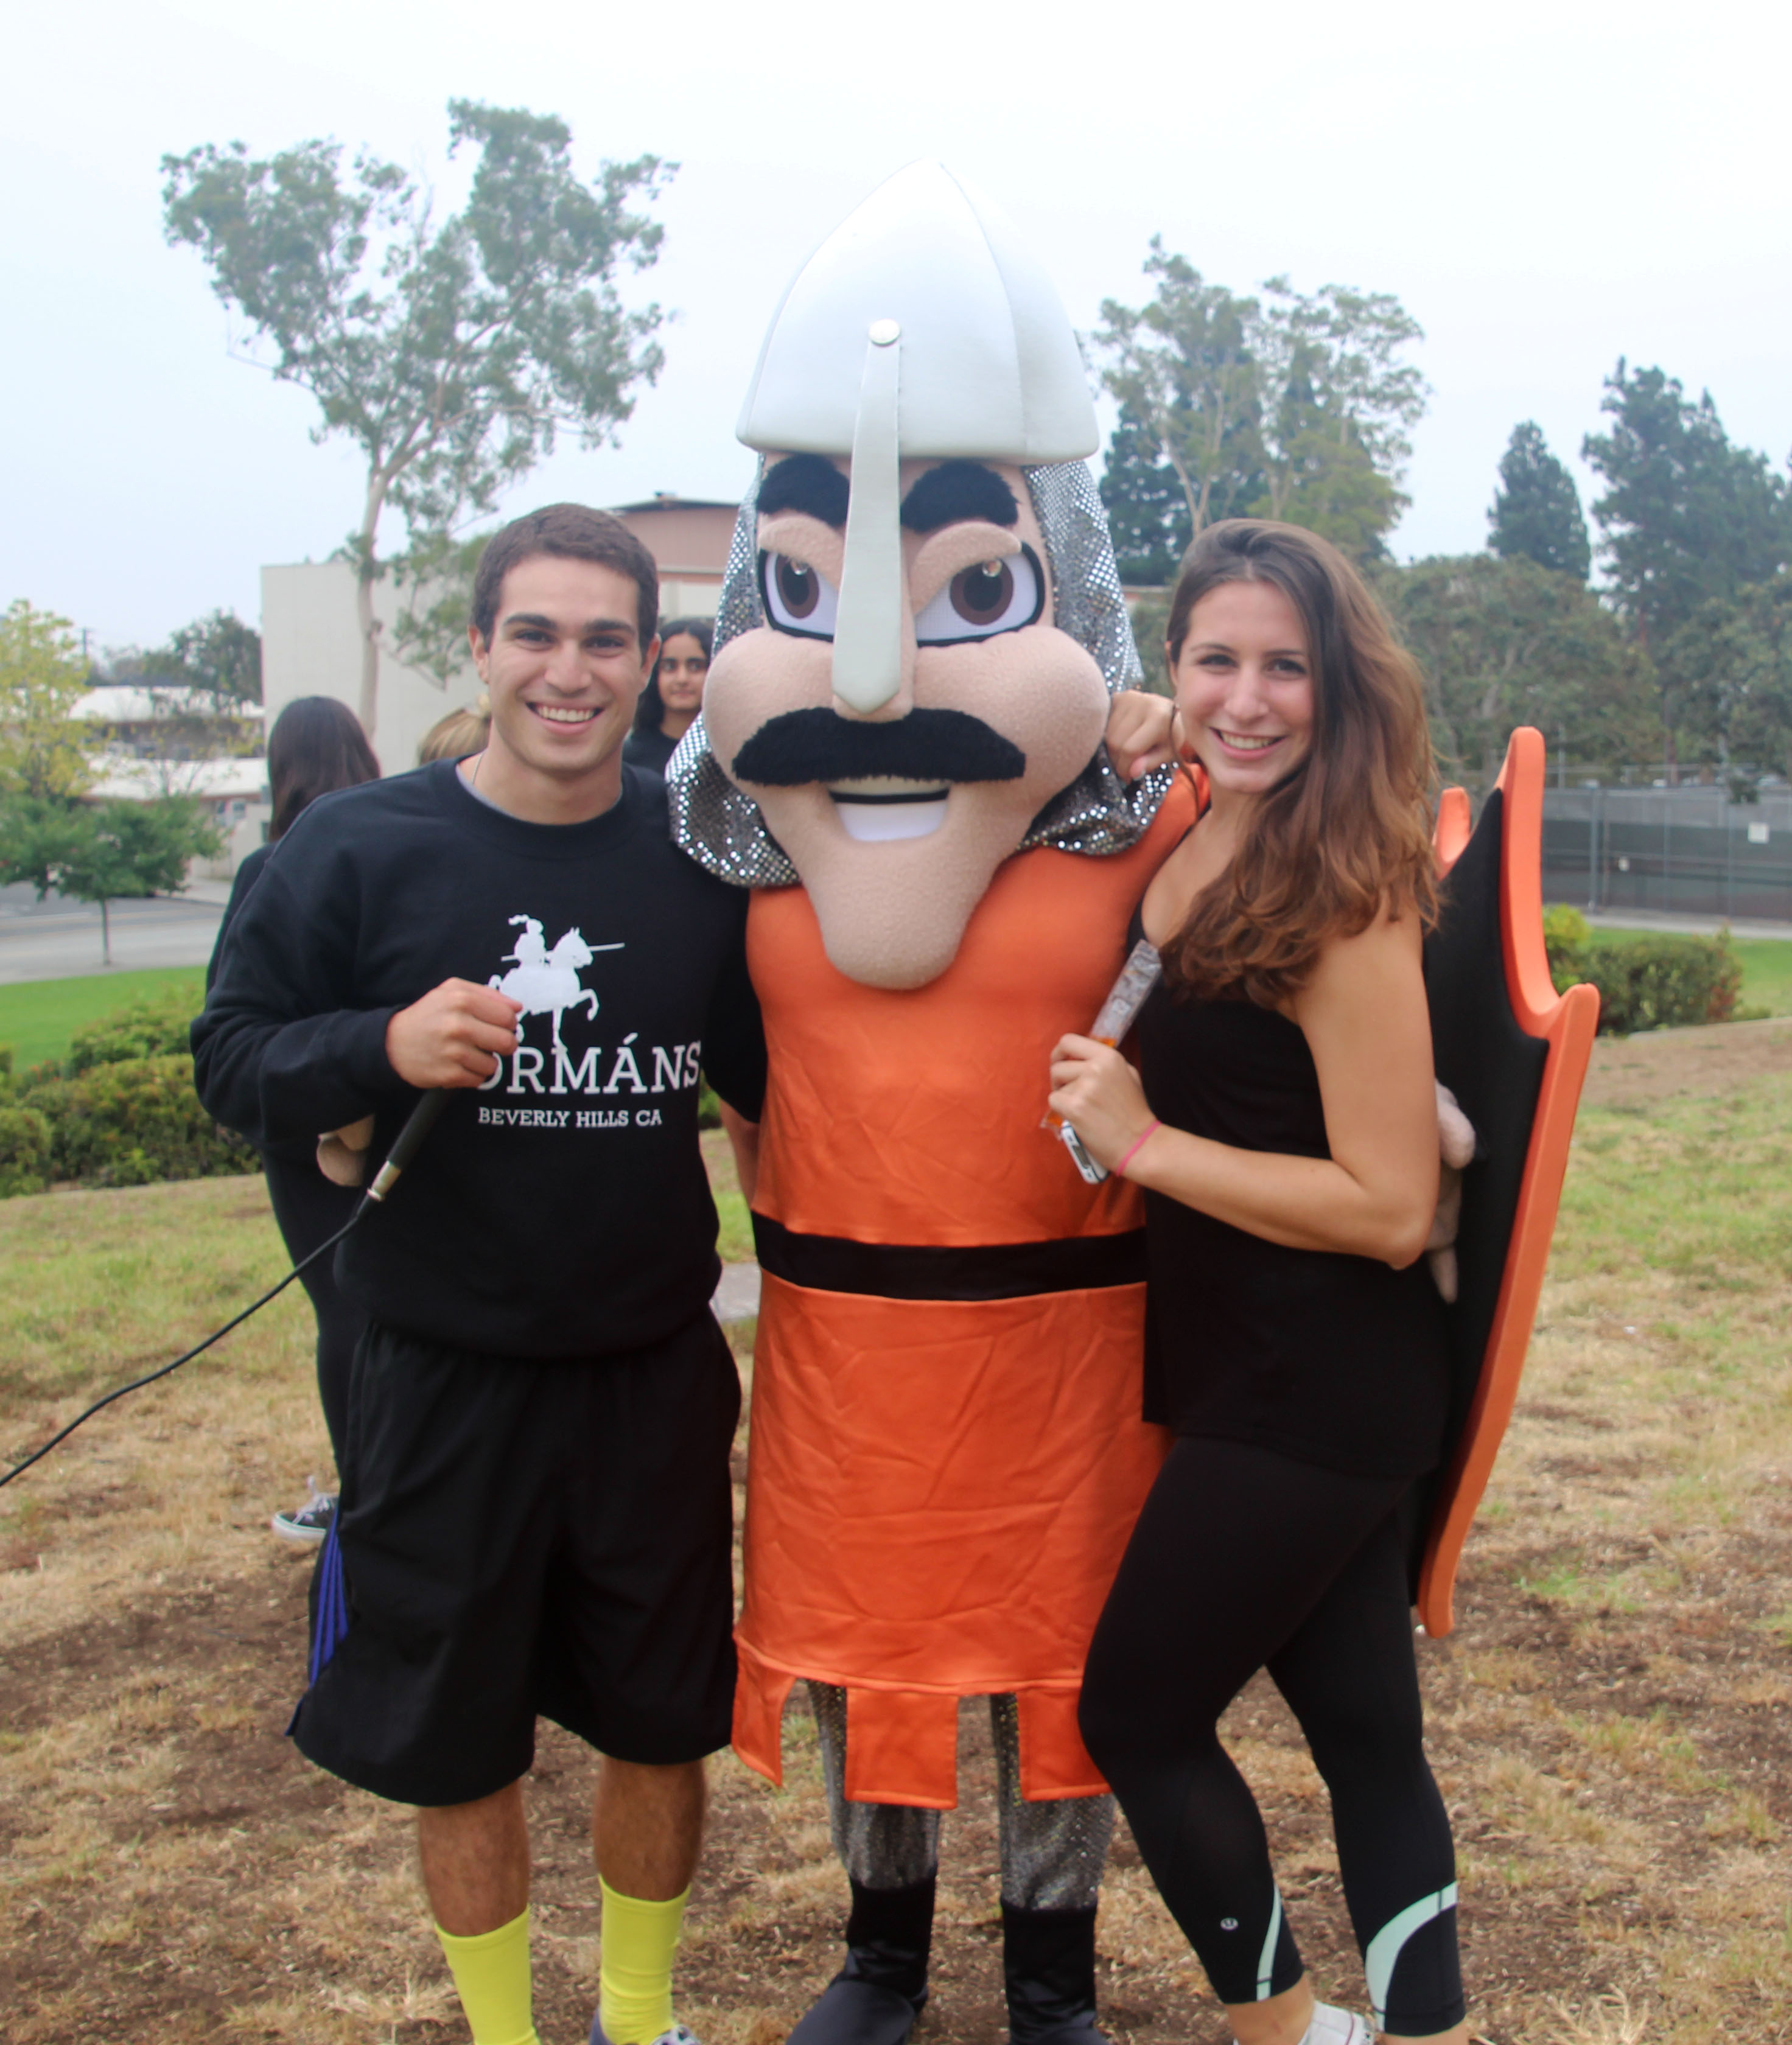 ASB members seniors Allie Kahn and Matt Mokhtarzadeh pose with the Norman mascot.